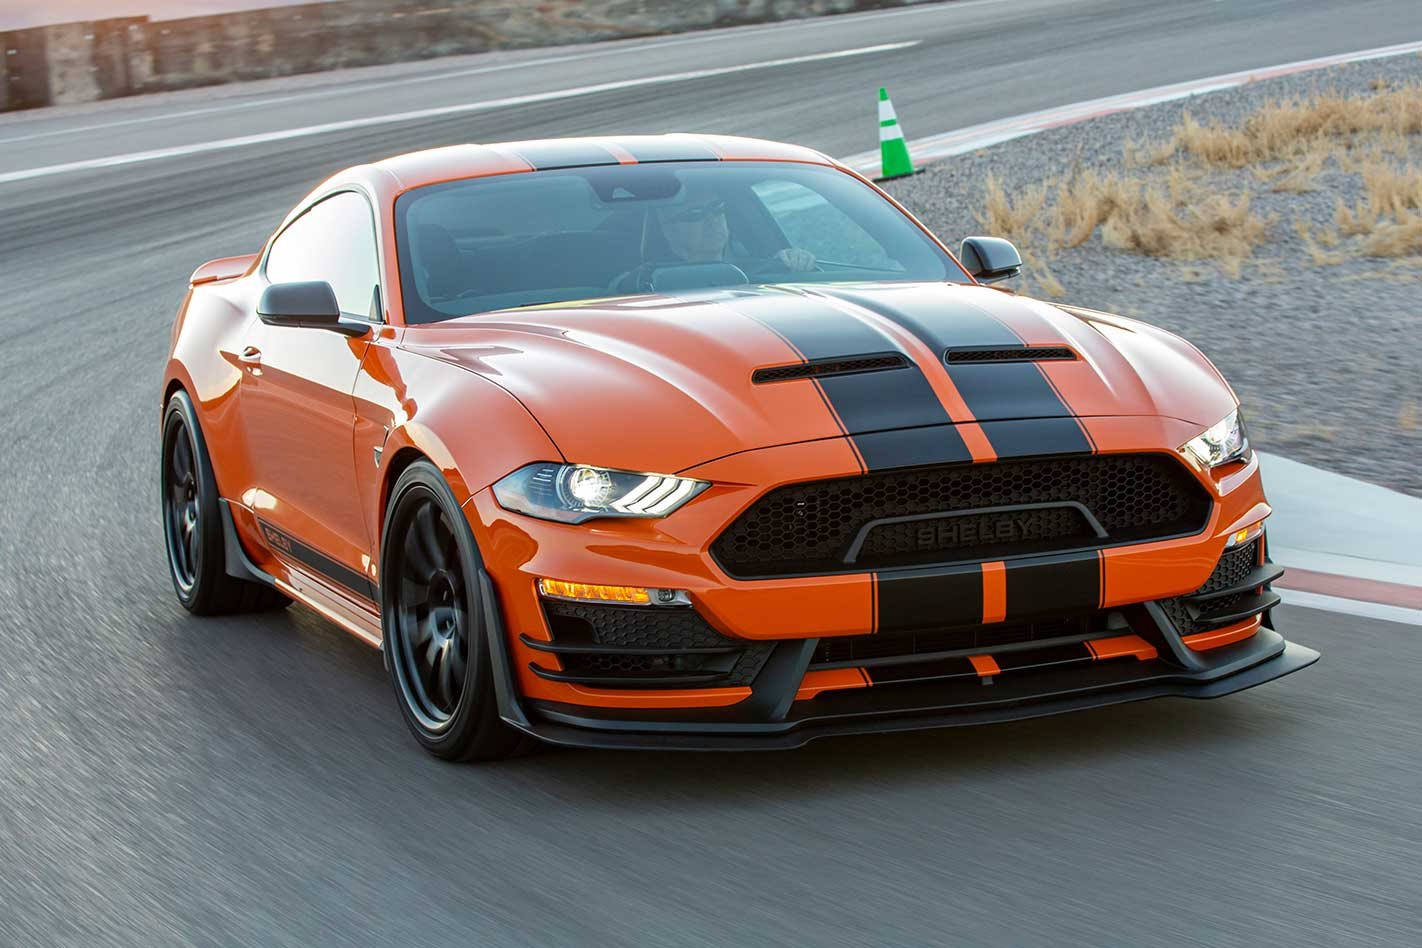 Carroll Shelby Signature Series Mustang revealed